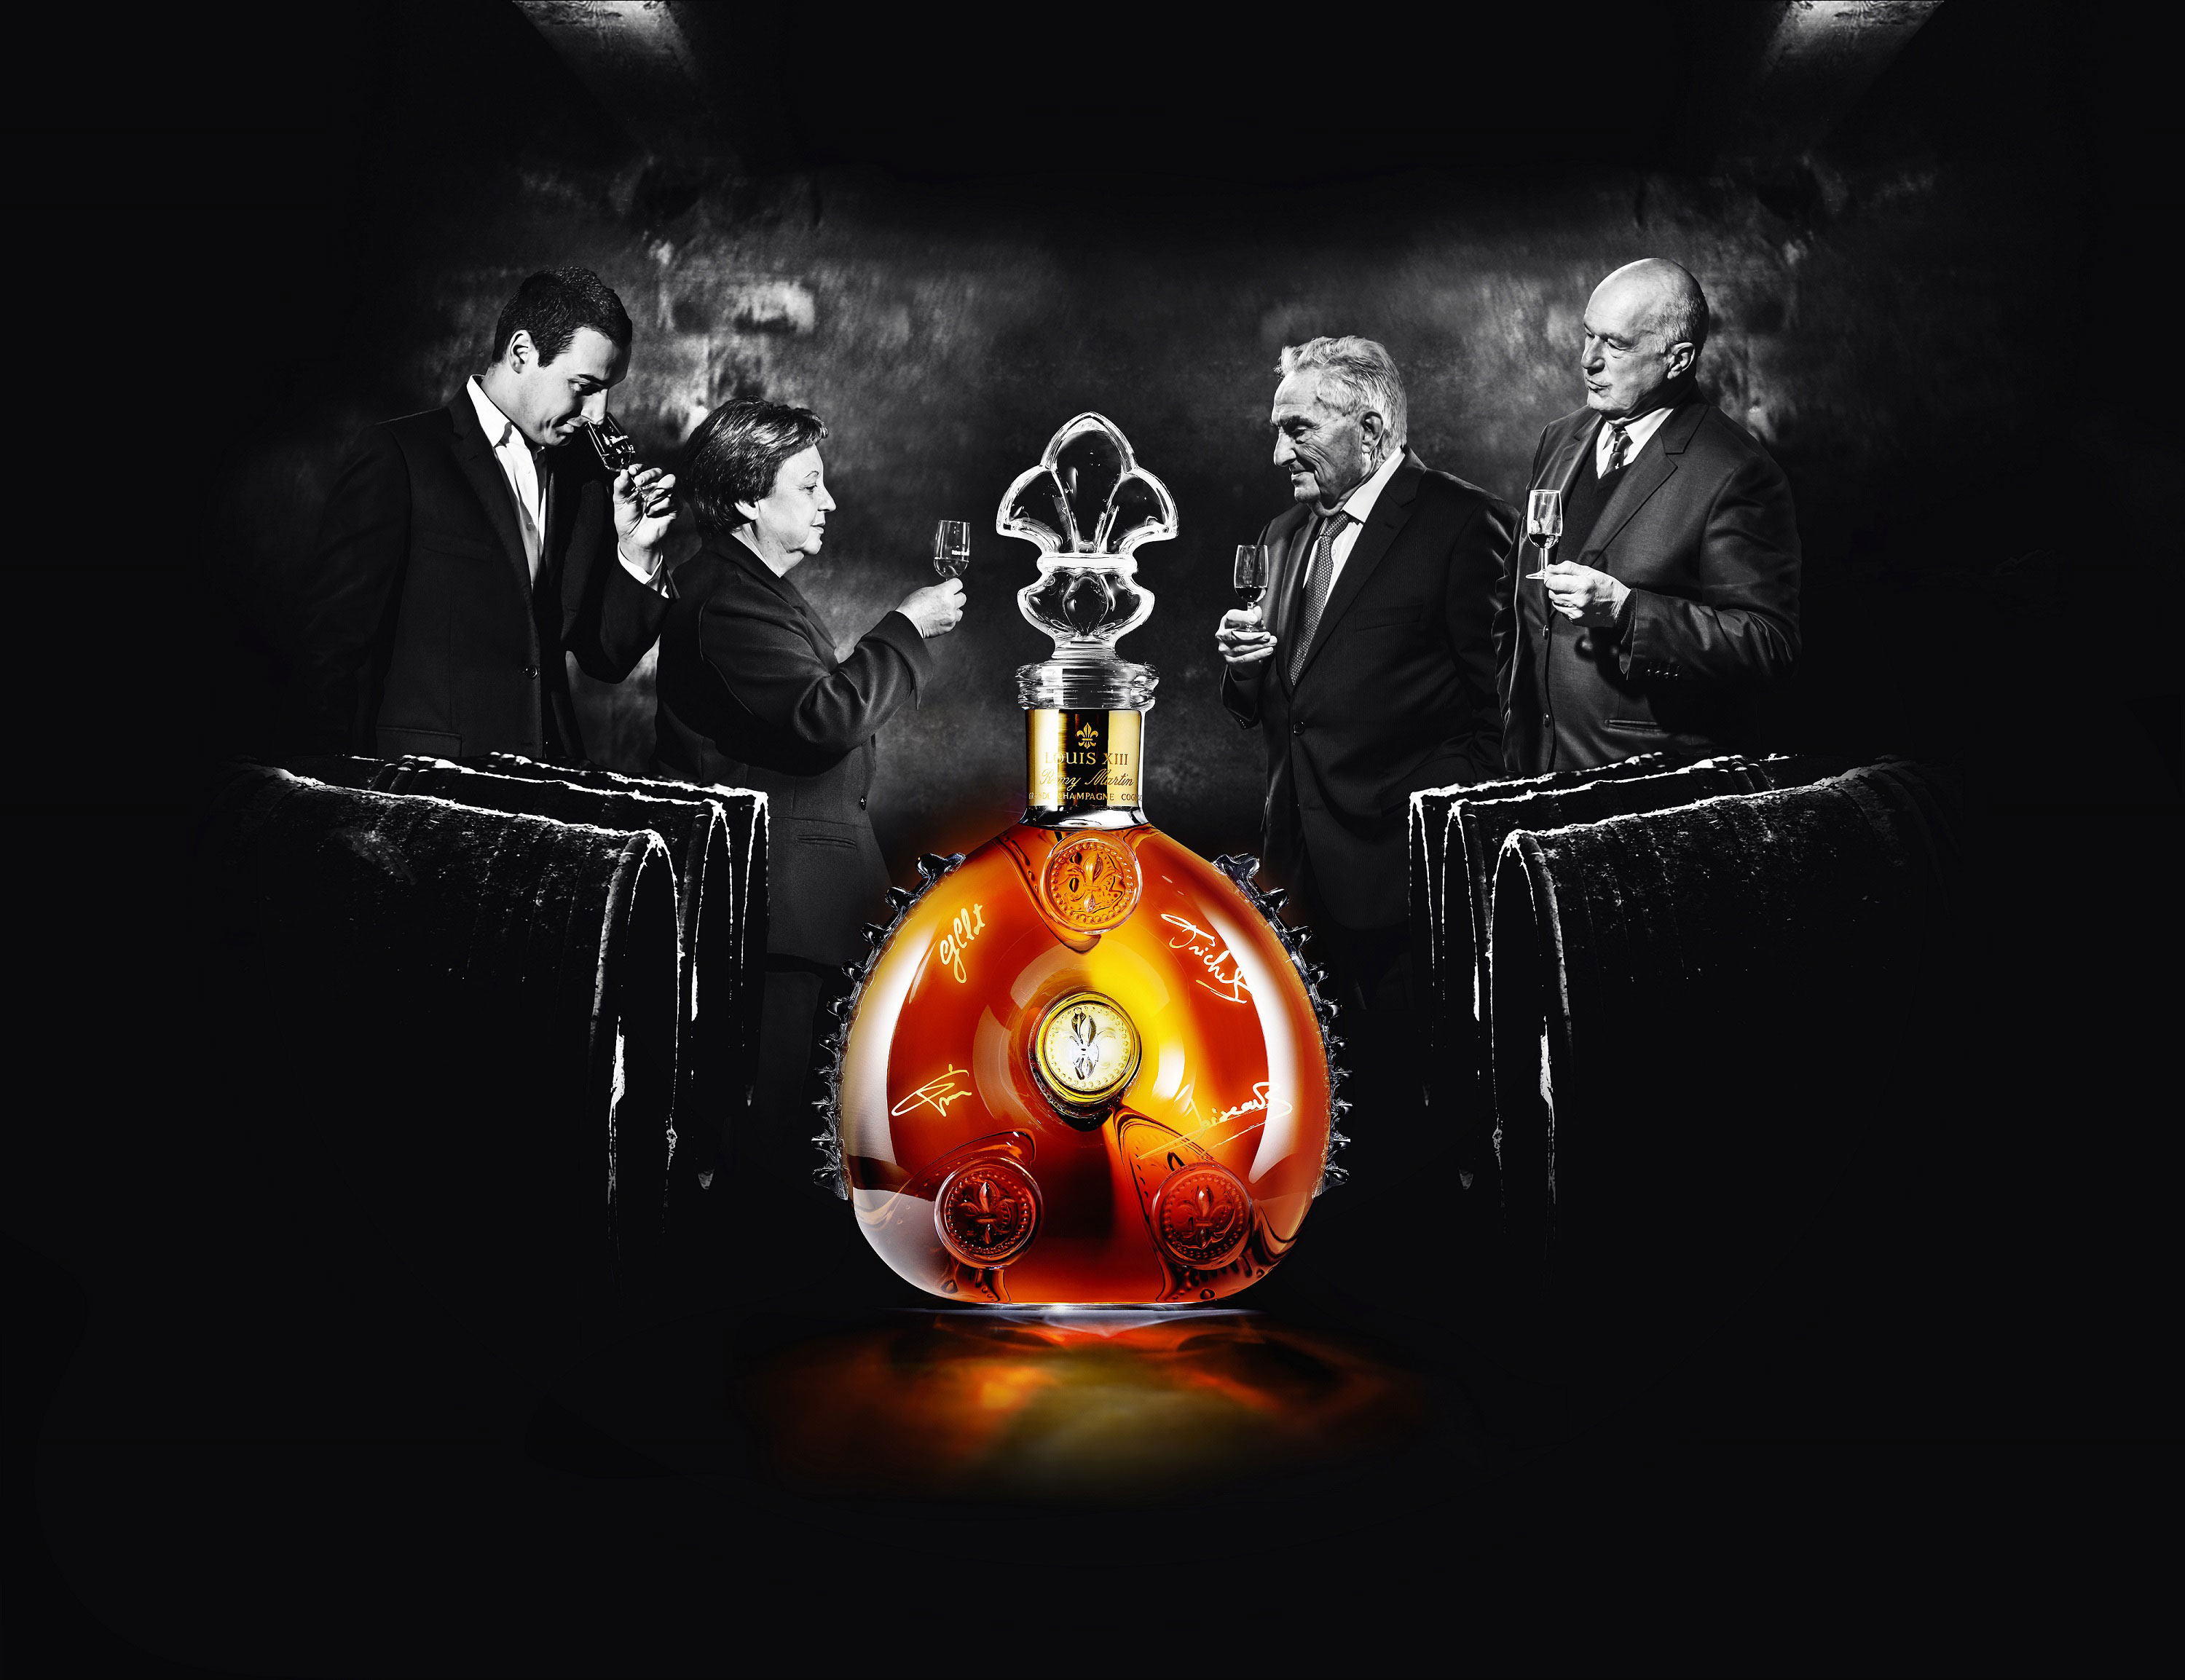 Louis XIII Releases Once-In-A-Lifetime Decanter